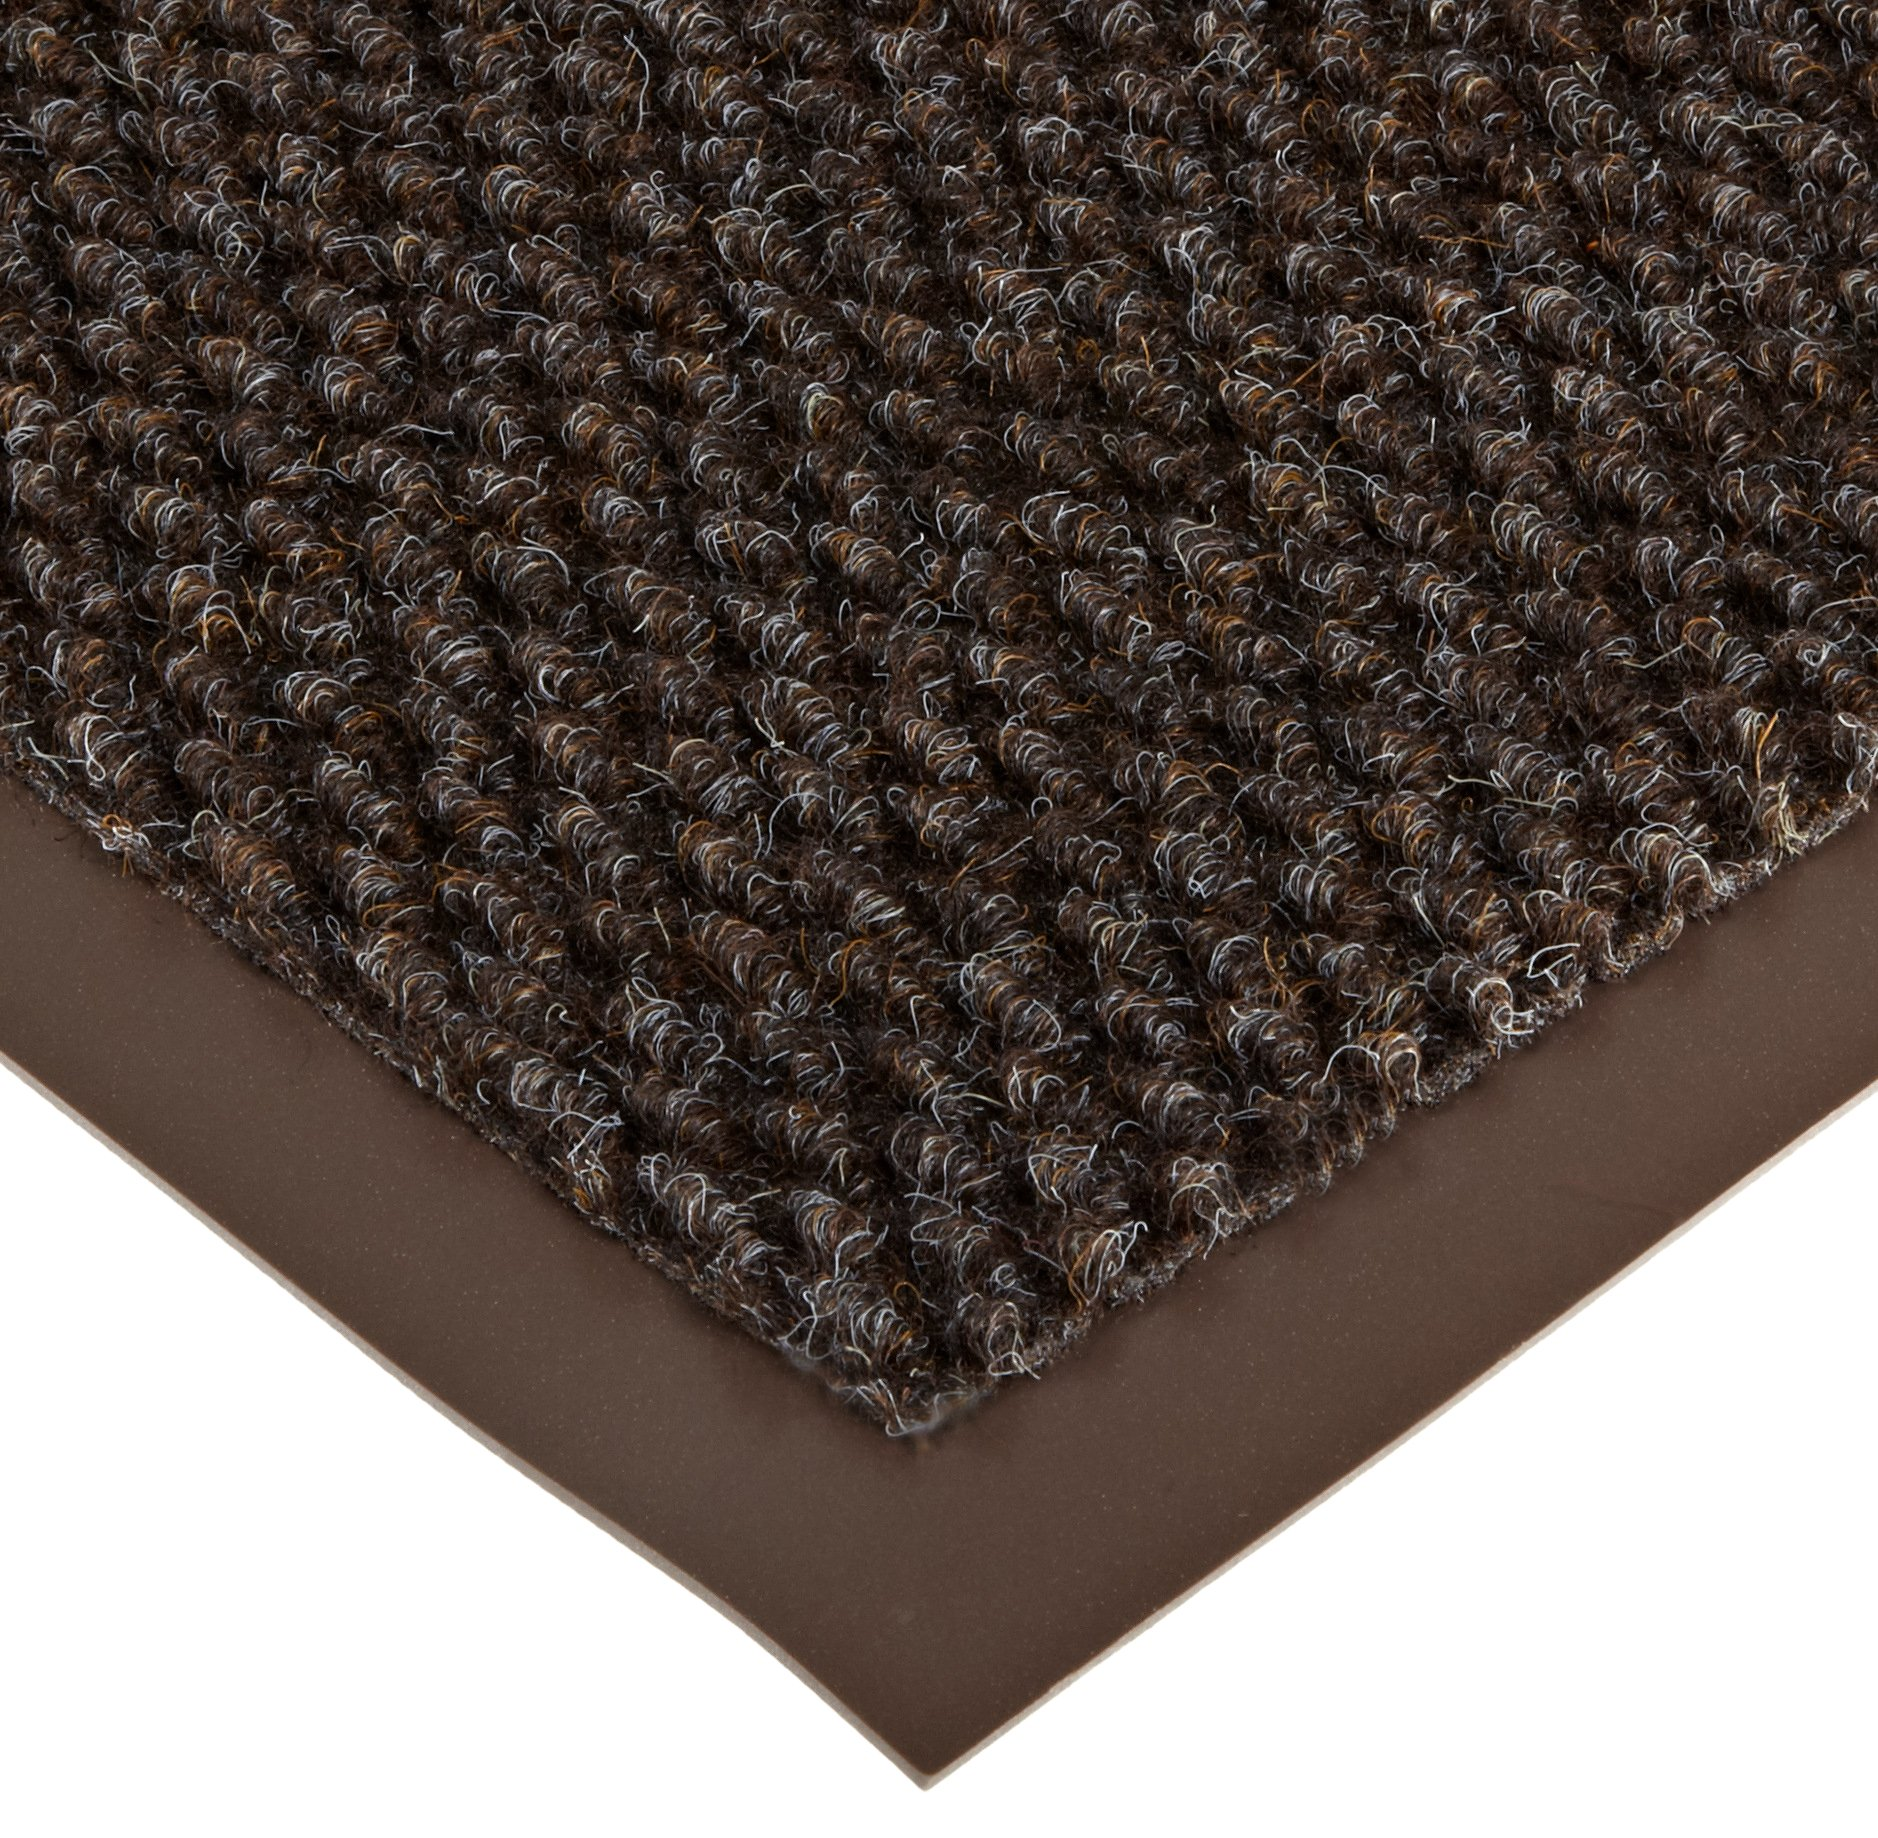 Notrax 136 Polynib Entrance Mat, for Lobbies and Indoor Entranceways, 3' Width x 6' Length x 1/4'' Thickness, Brown